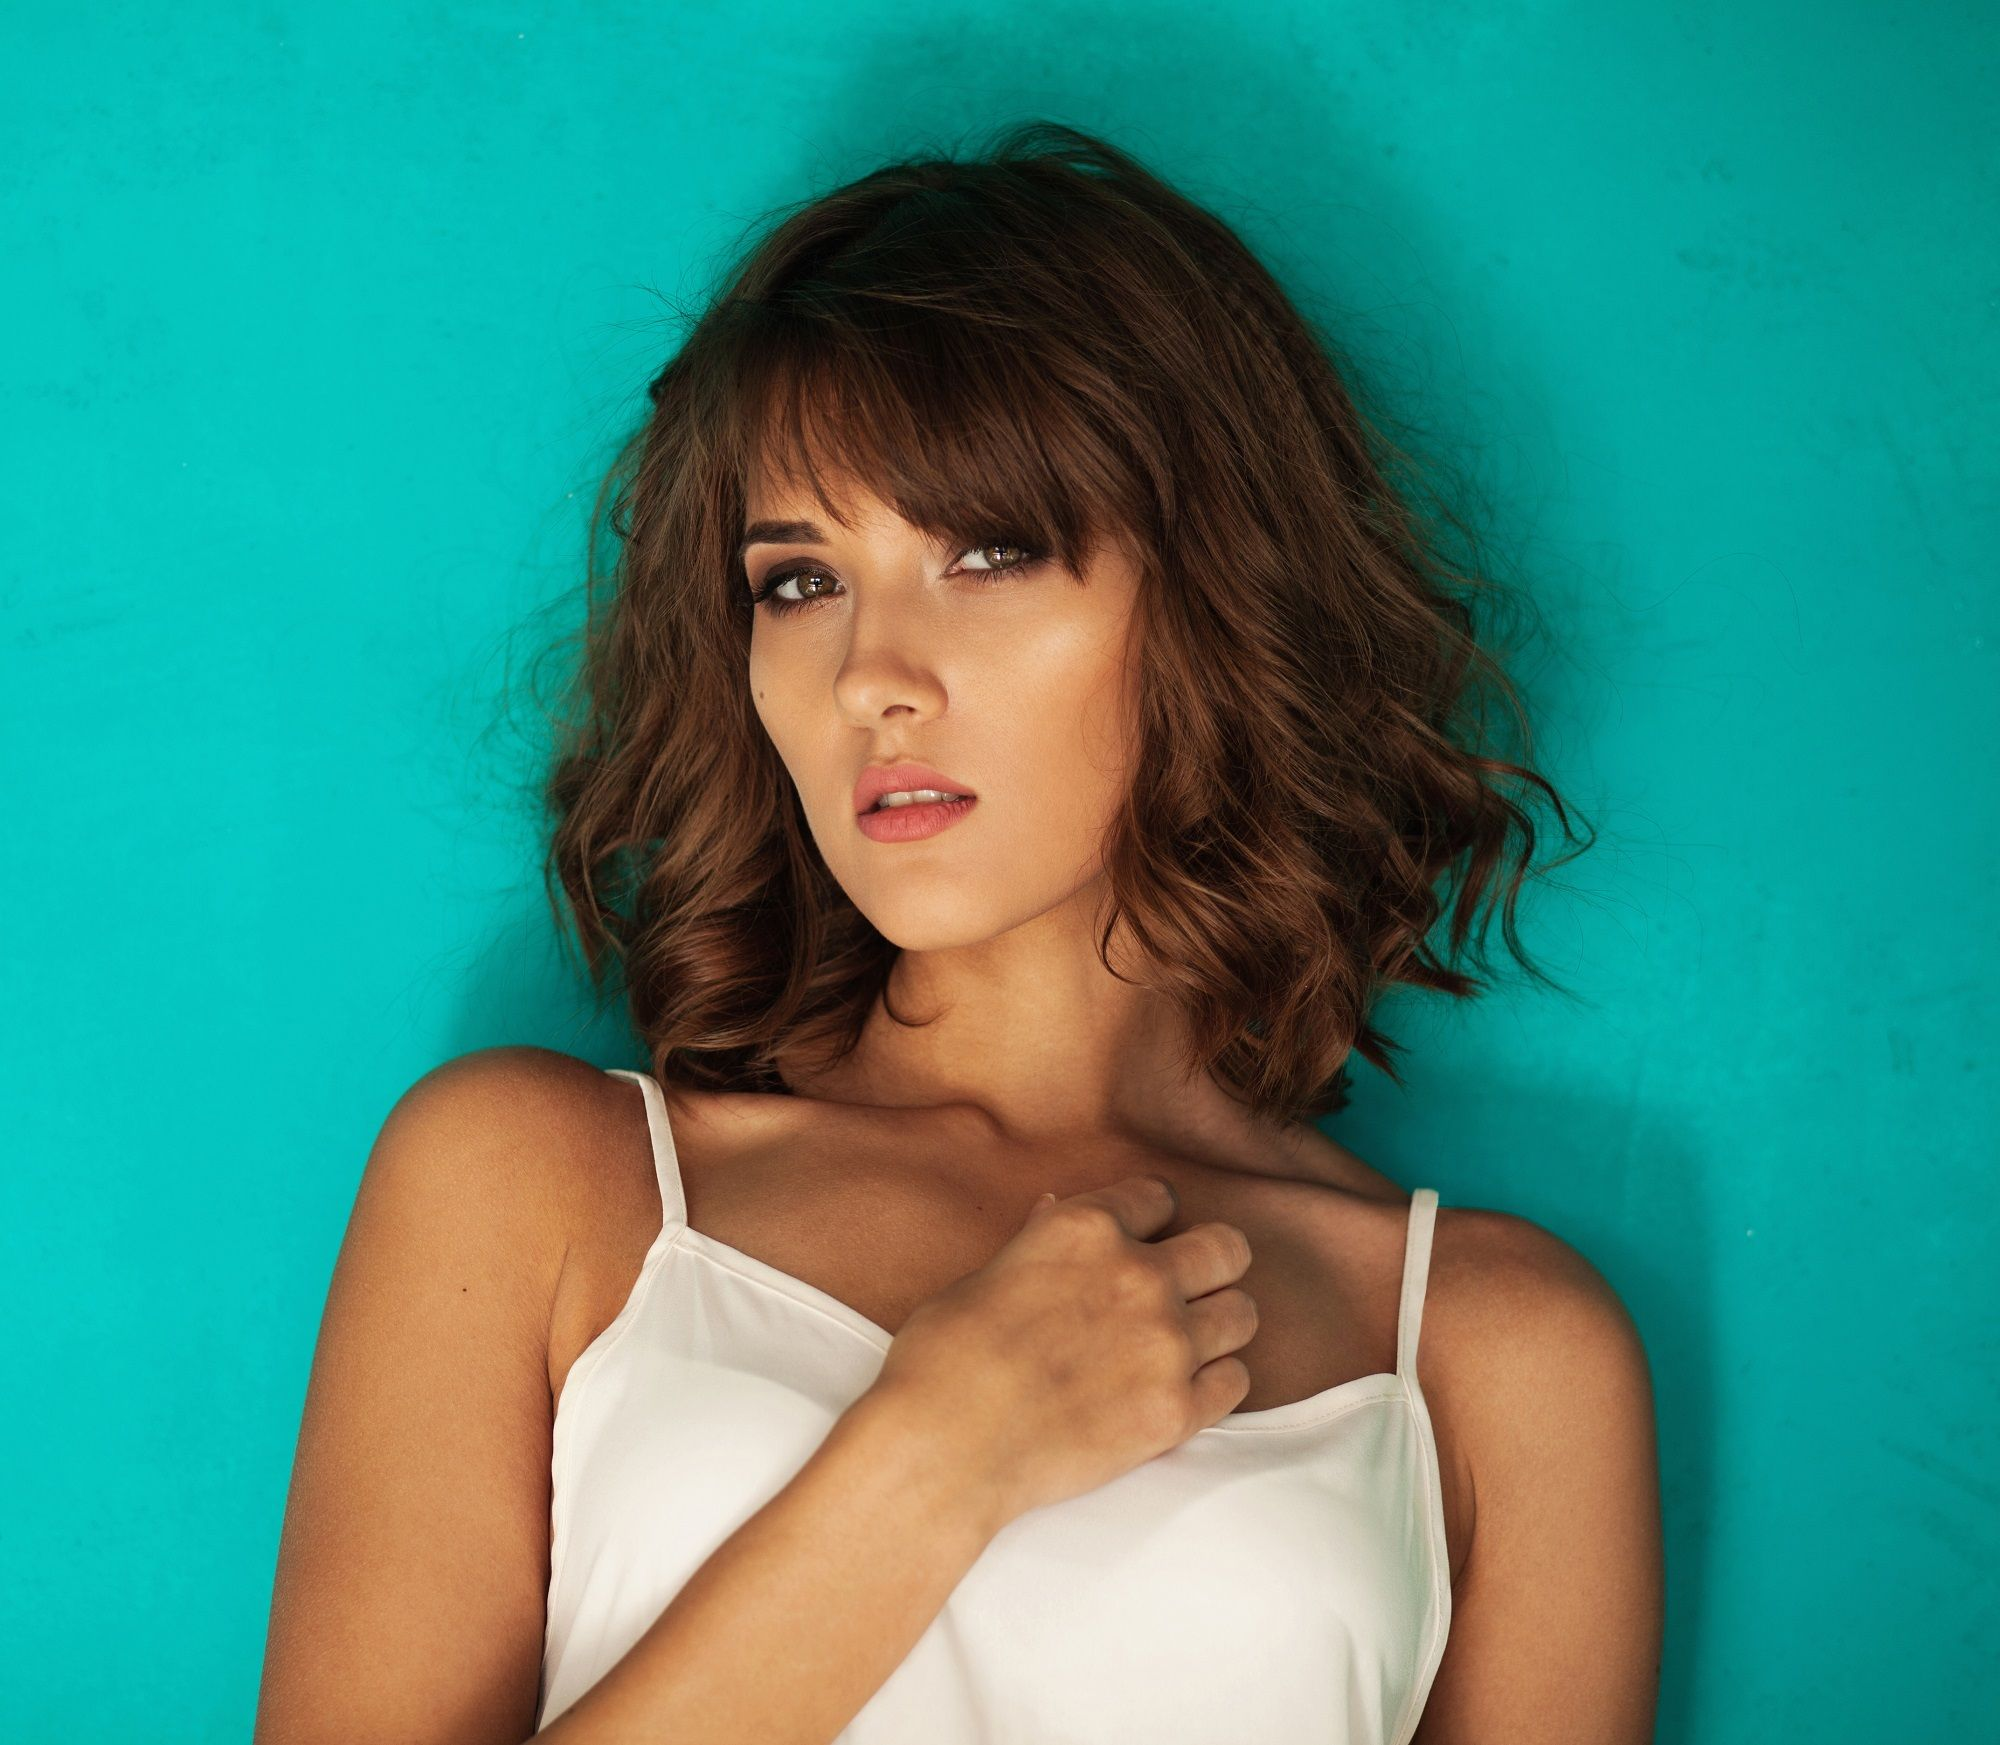 Layered haircuts with bangs: Closeup shot of a woman with wavy brown lob with bangs wearing a white top